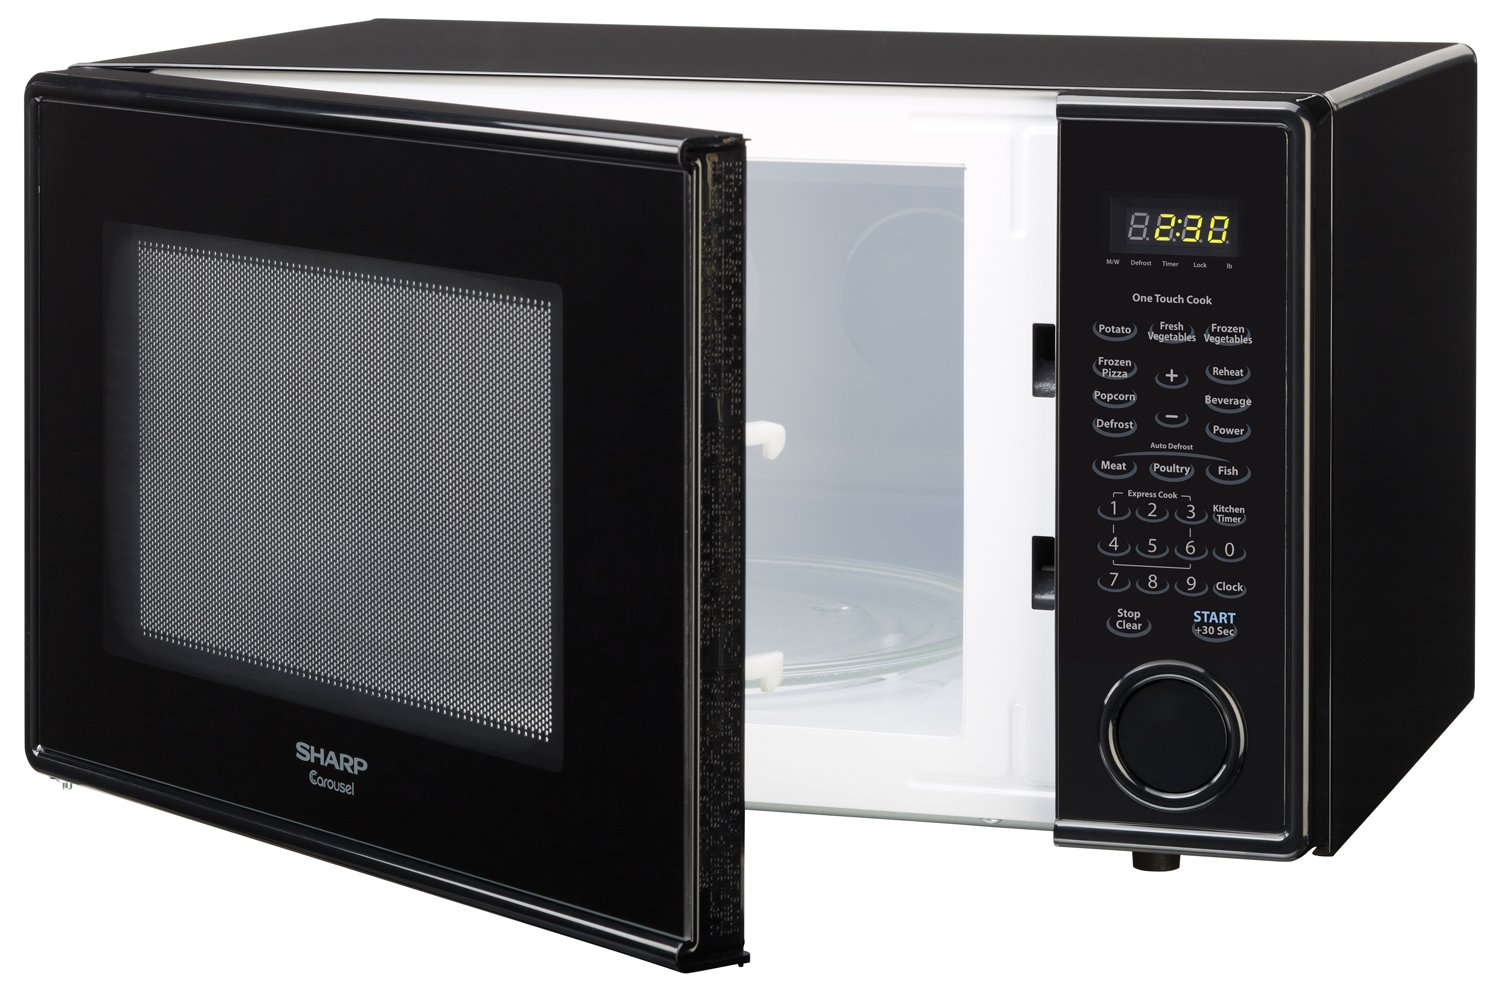 sharp convection microwave. amazon.com: sharp countertop microwave oven zr309yk 1.1 cu. ft. 1000w black: kitchen \u0026 dining convection